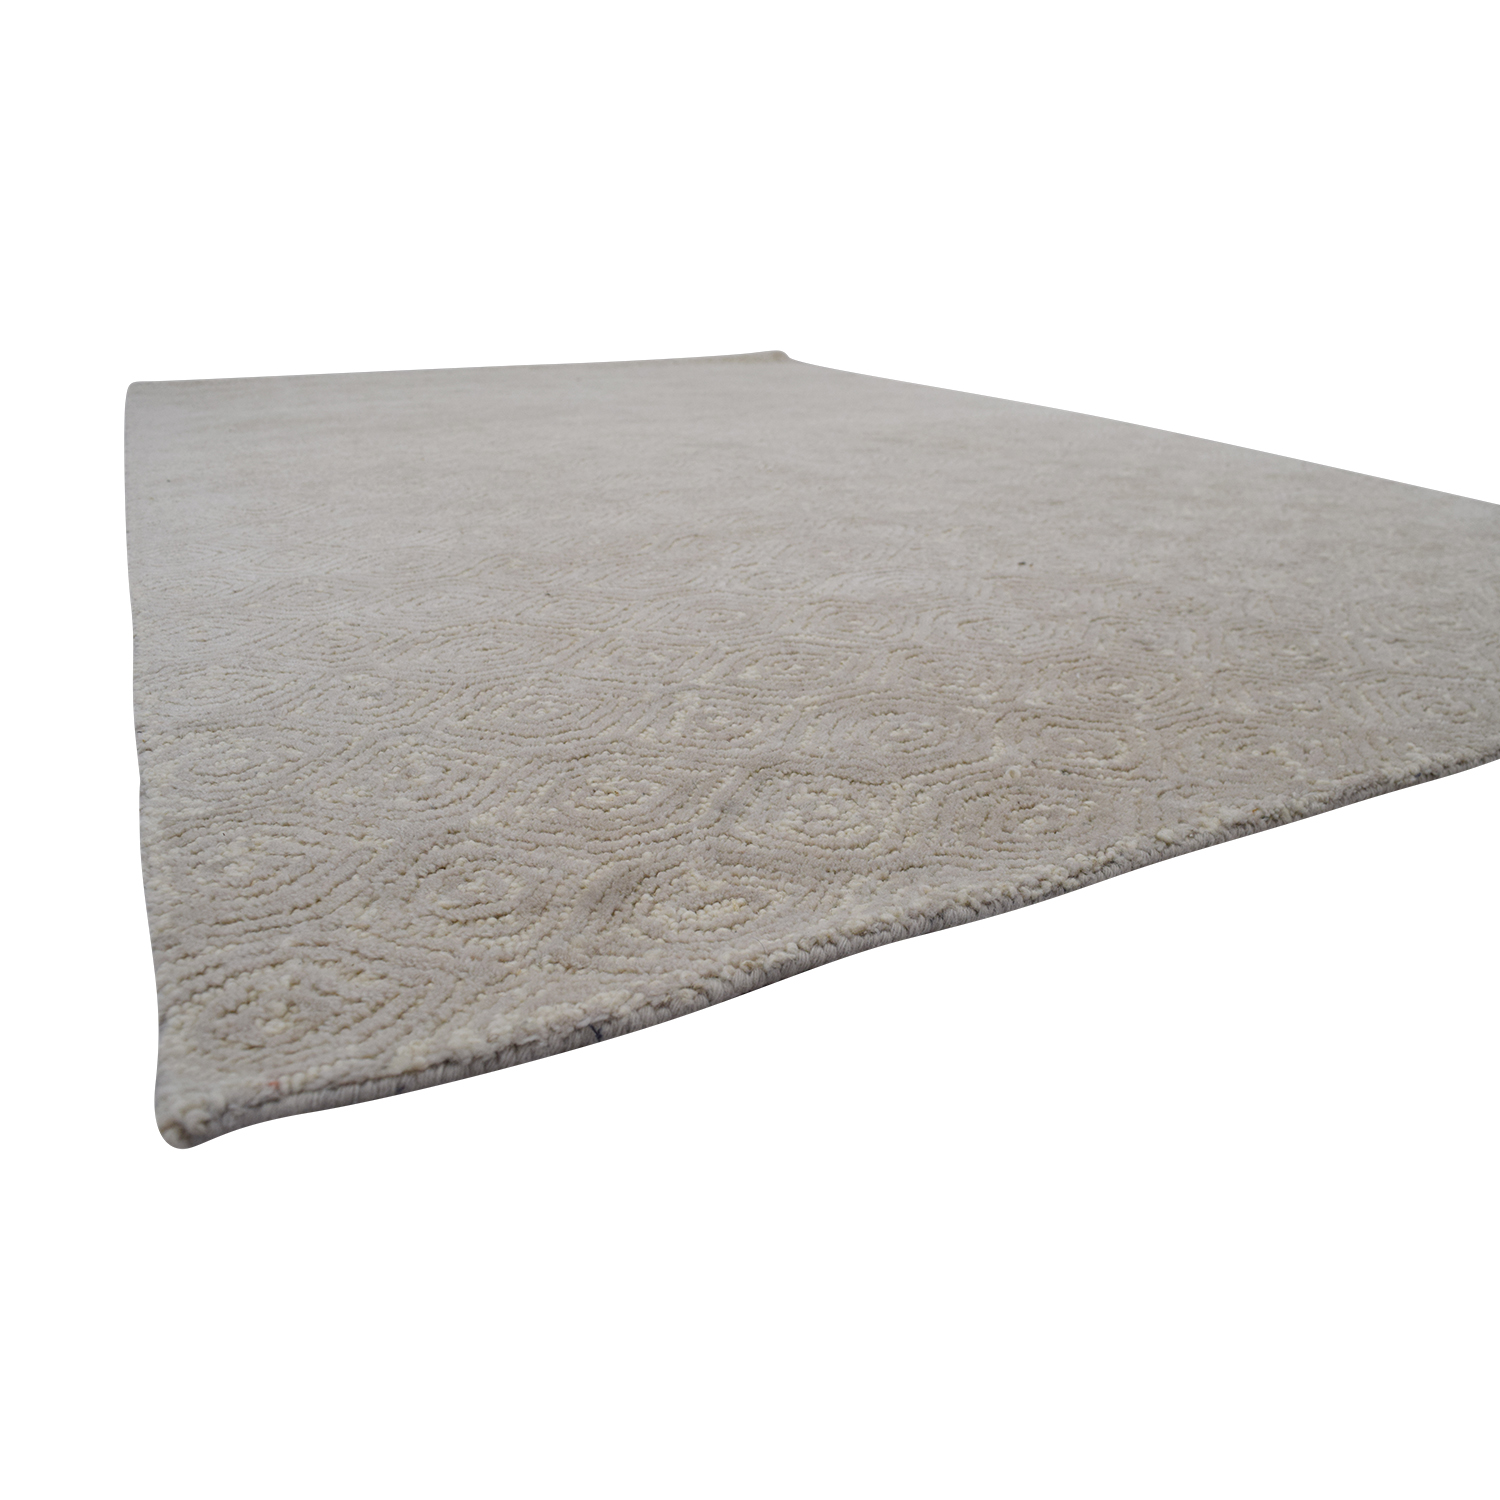 Obeetee Off White with Spiral Design Rug Obeetee